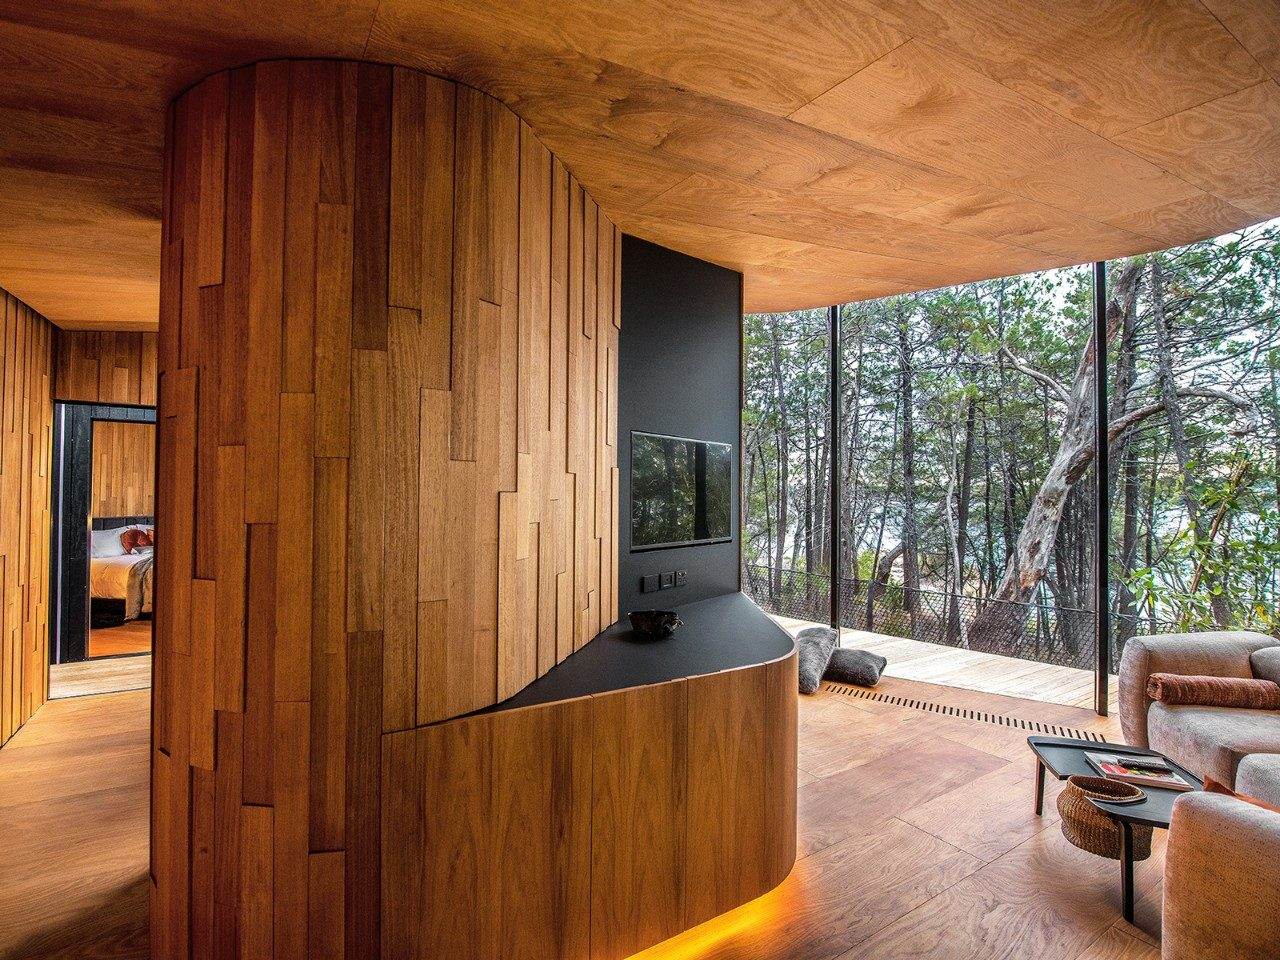 The 10 Most Sustainable Hotels in Australia